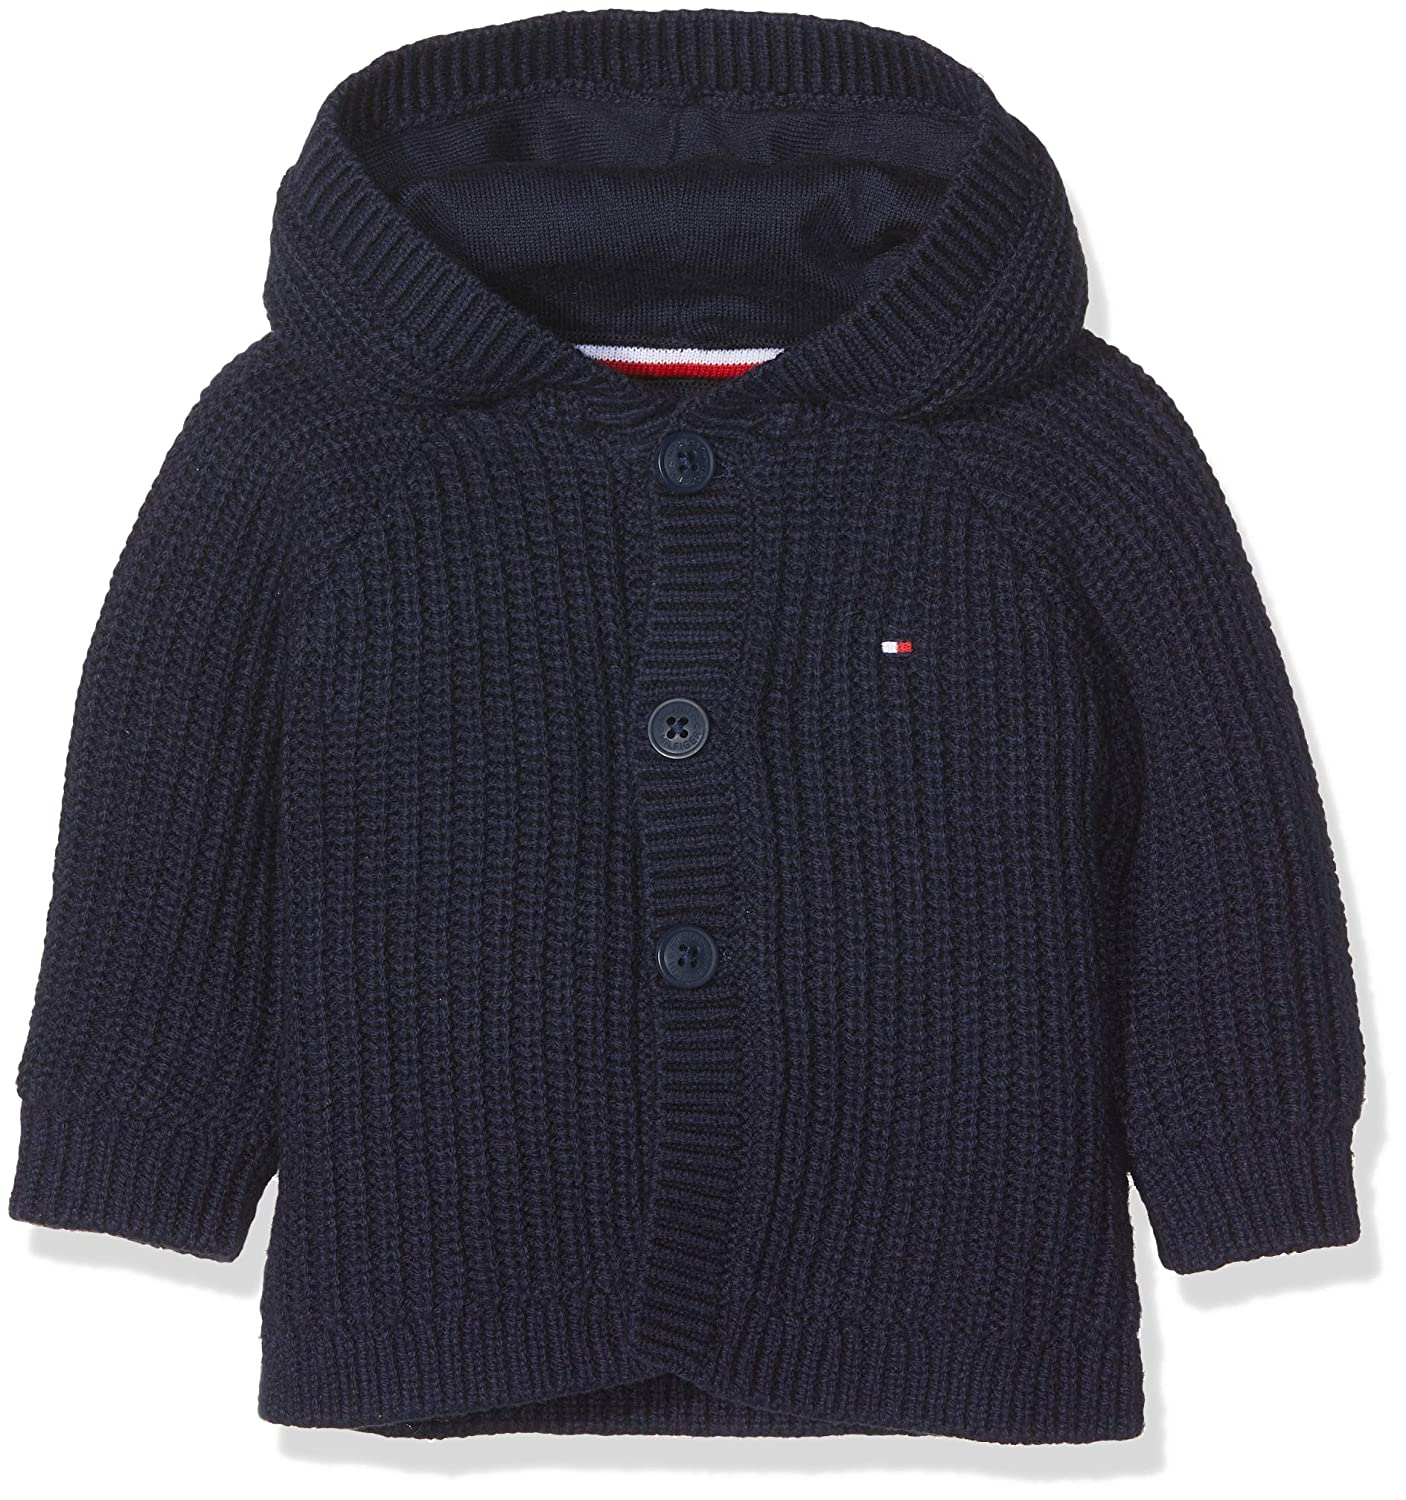 Tommy Hilfiger Unisex Kapuzenpullover Baby Textured Hooded Cardigan KN0KN00917